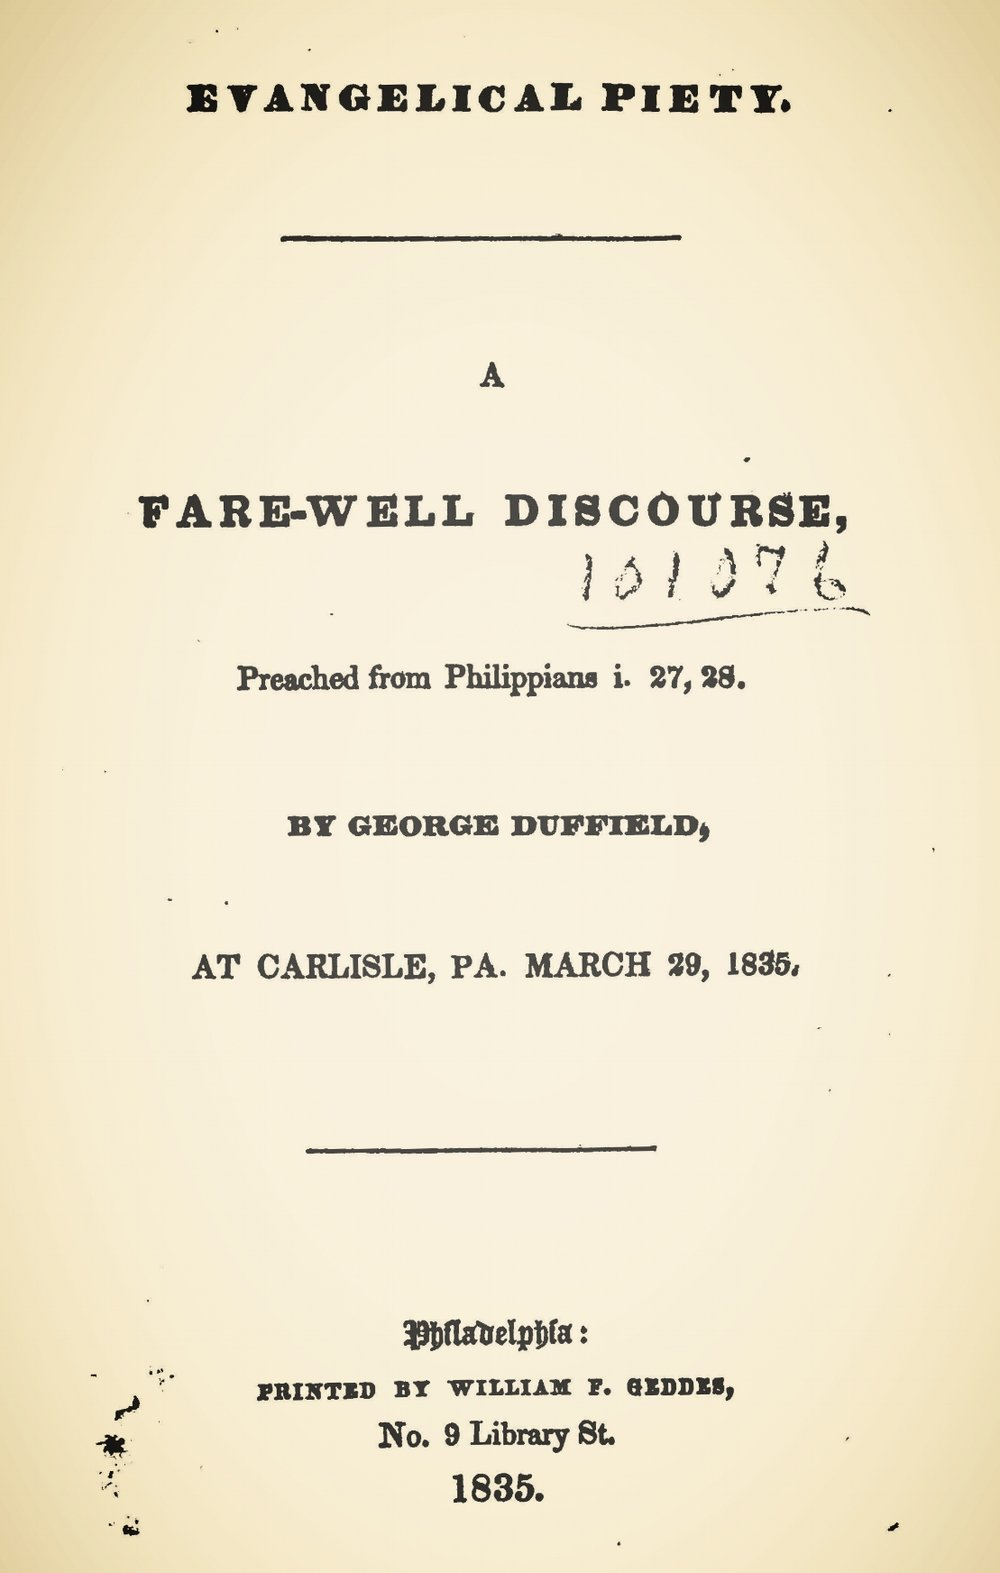 Duffield, IV, George, Evangelical Piety Title Page.jpg